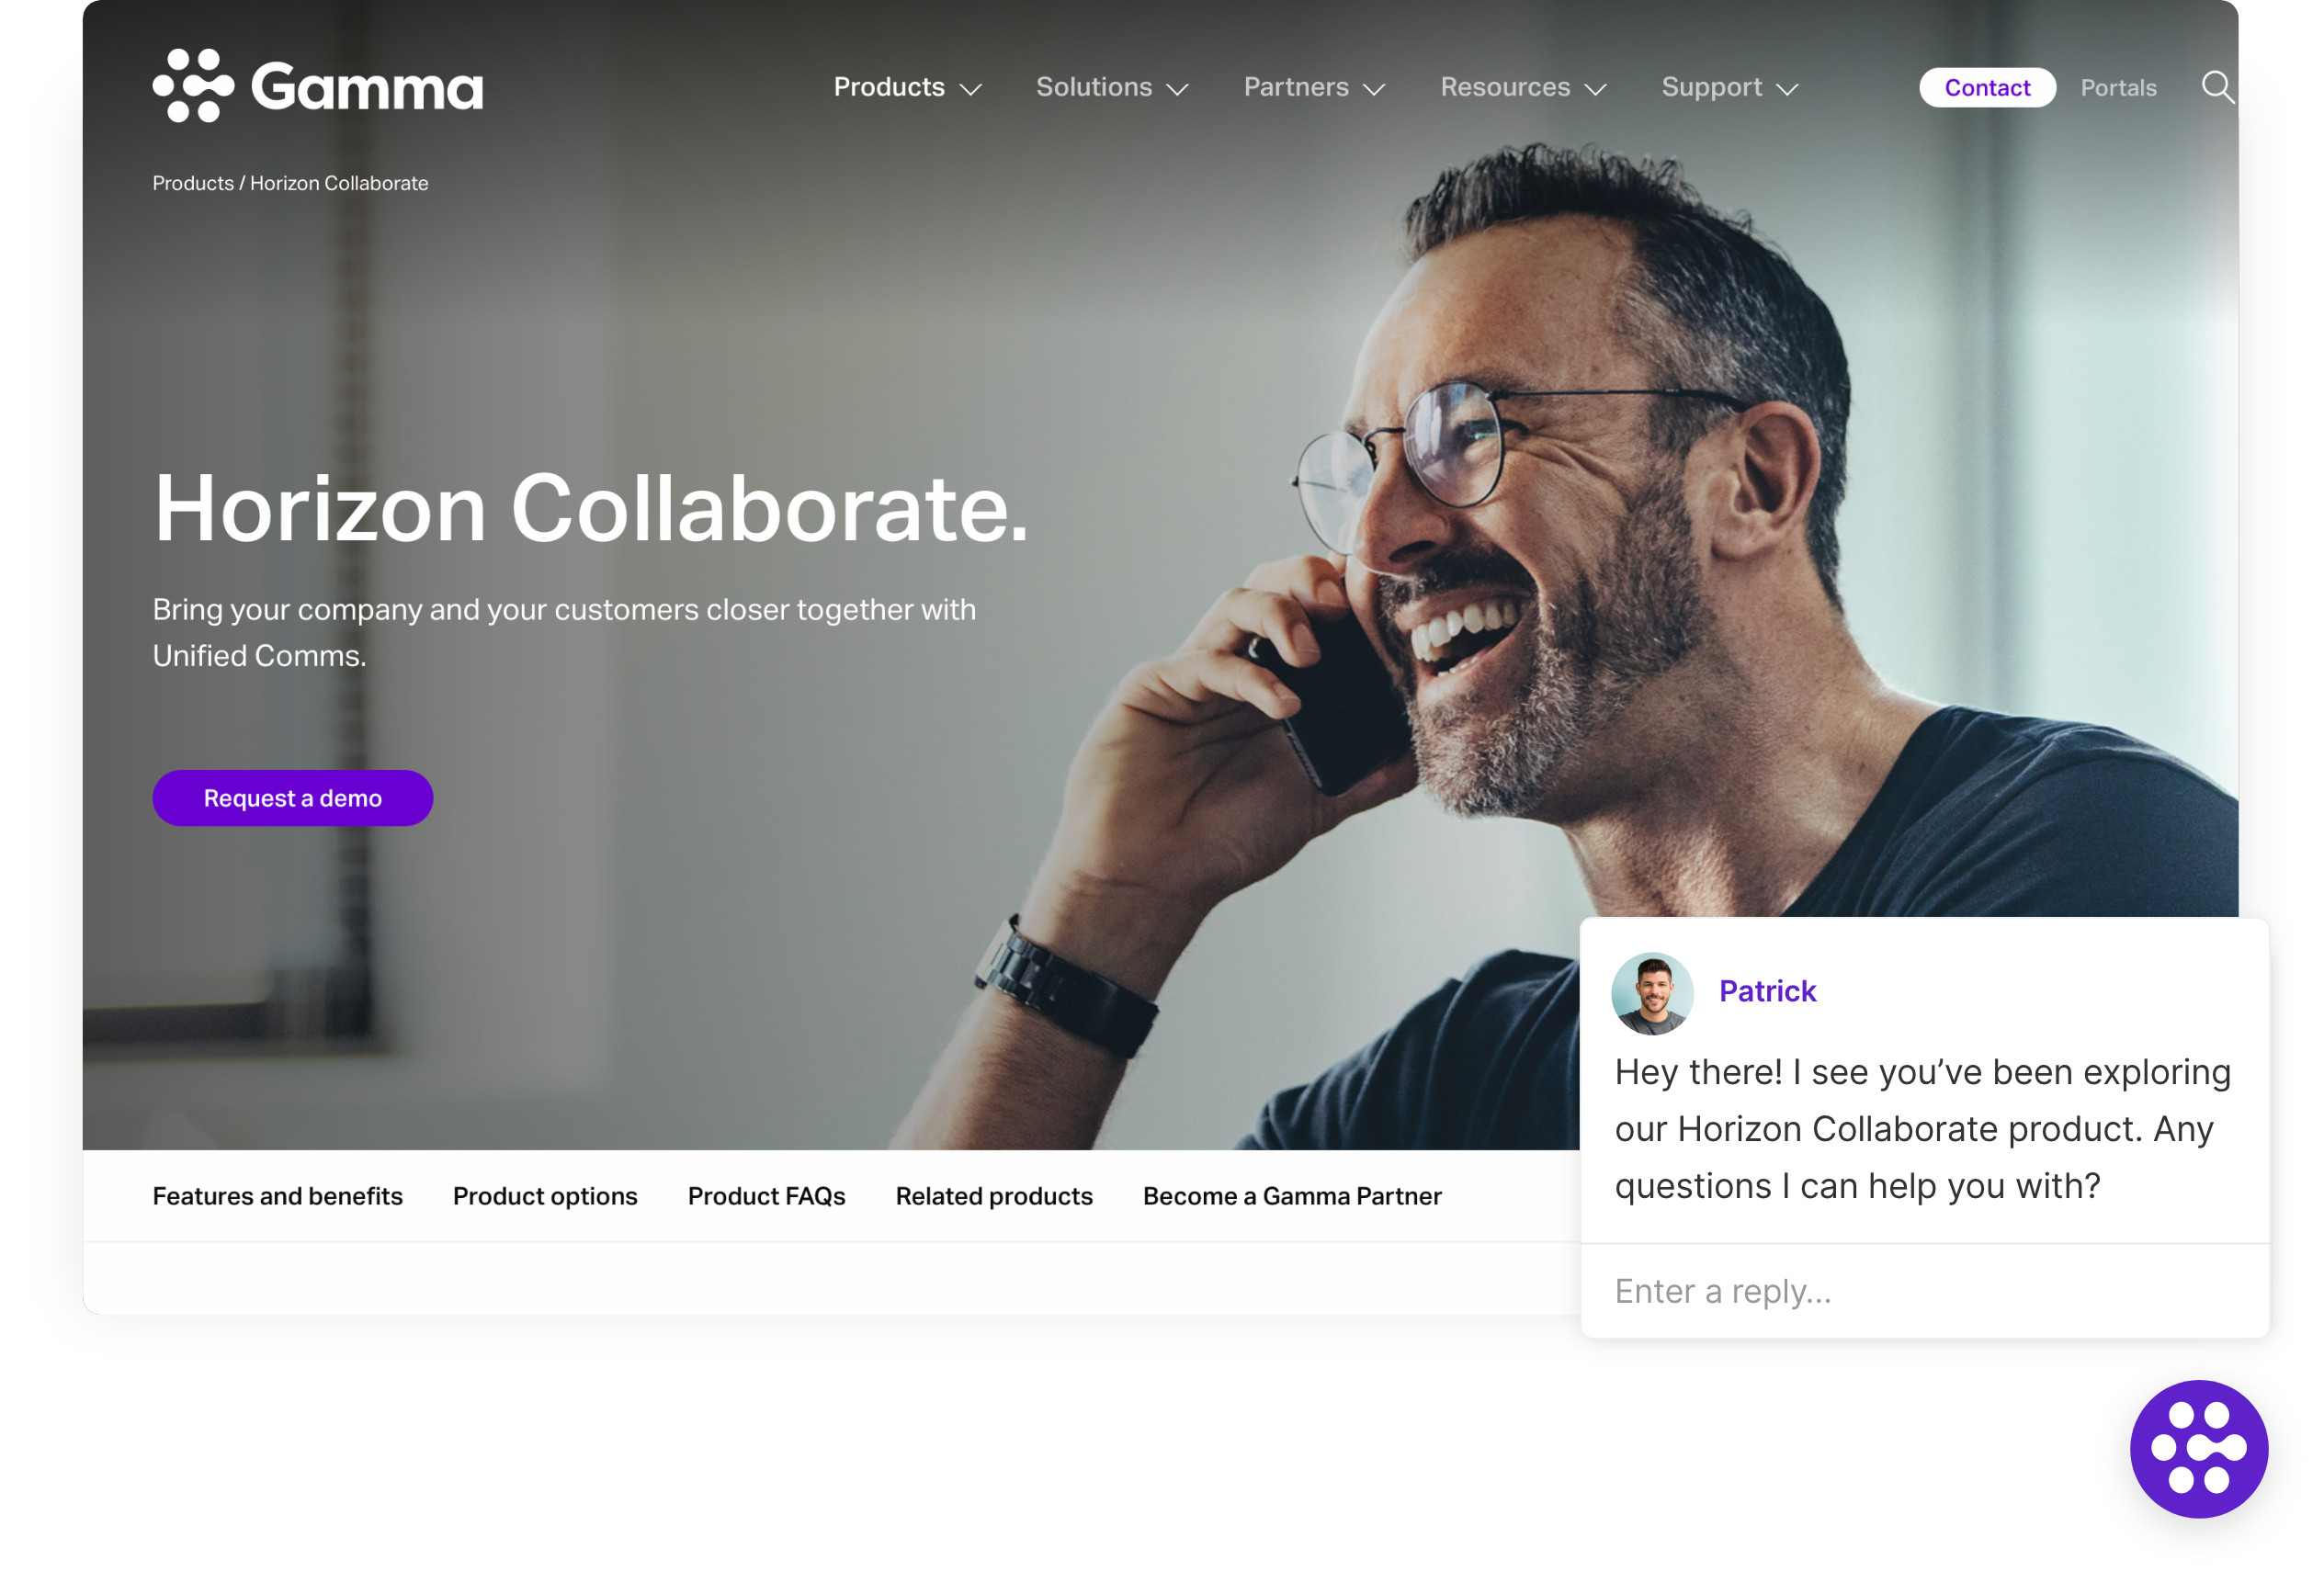 Gamma welcomes qualified visitors with an invitation to have a real-time sales conversation